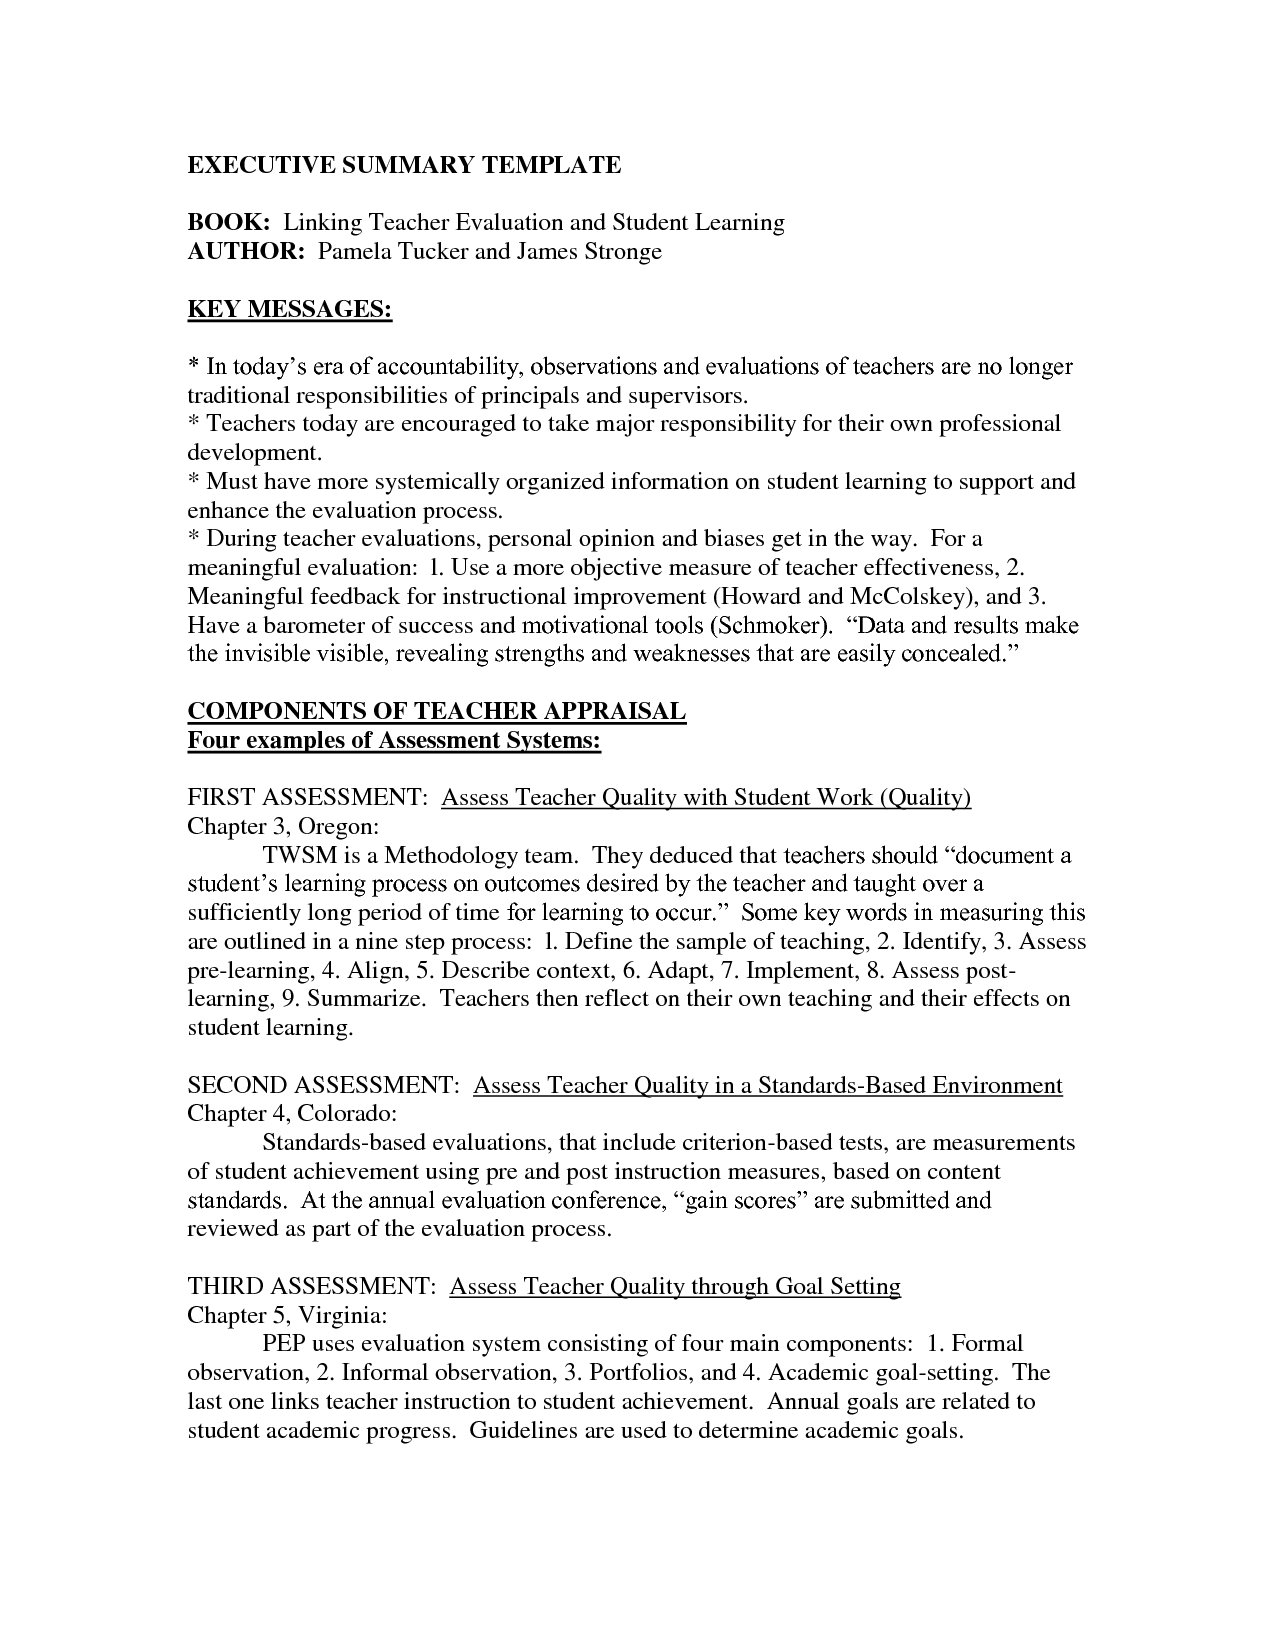 Word Executive Summary Template Resume Example Samples Pdf  Resume Executive Summary Sample